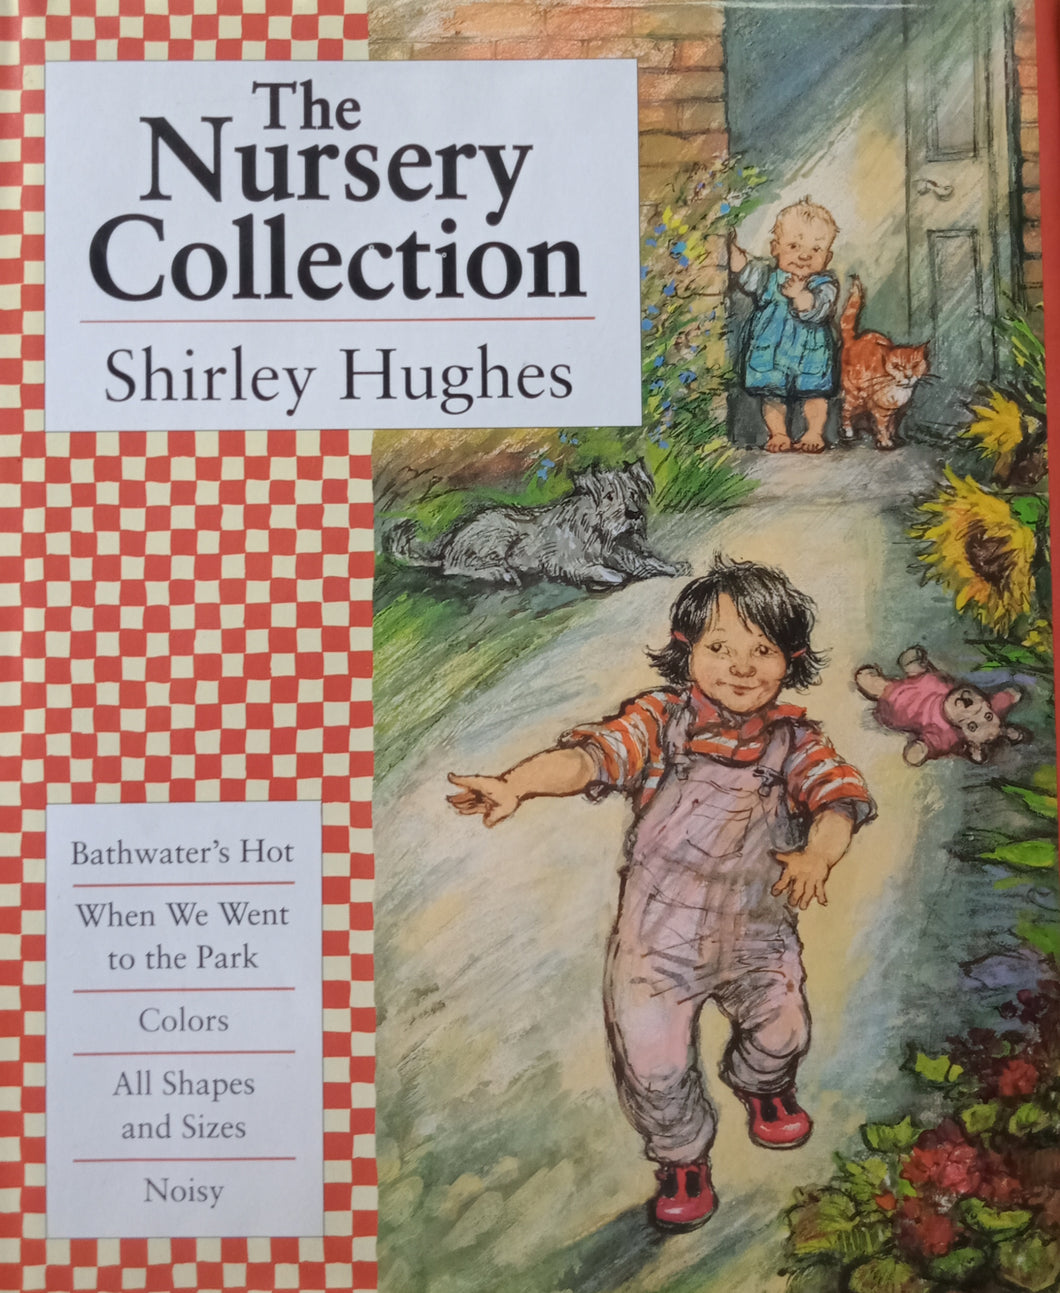 The Nursery Collection by Shirley Hughes